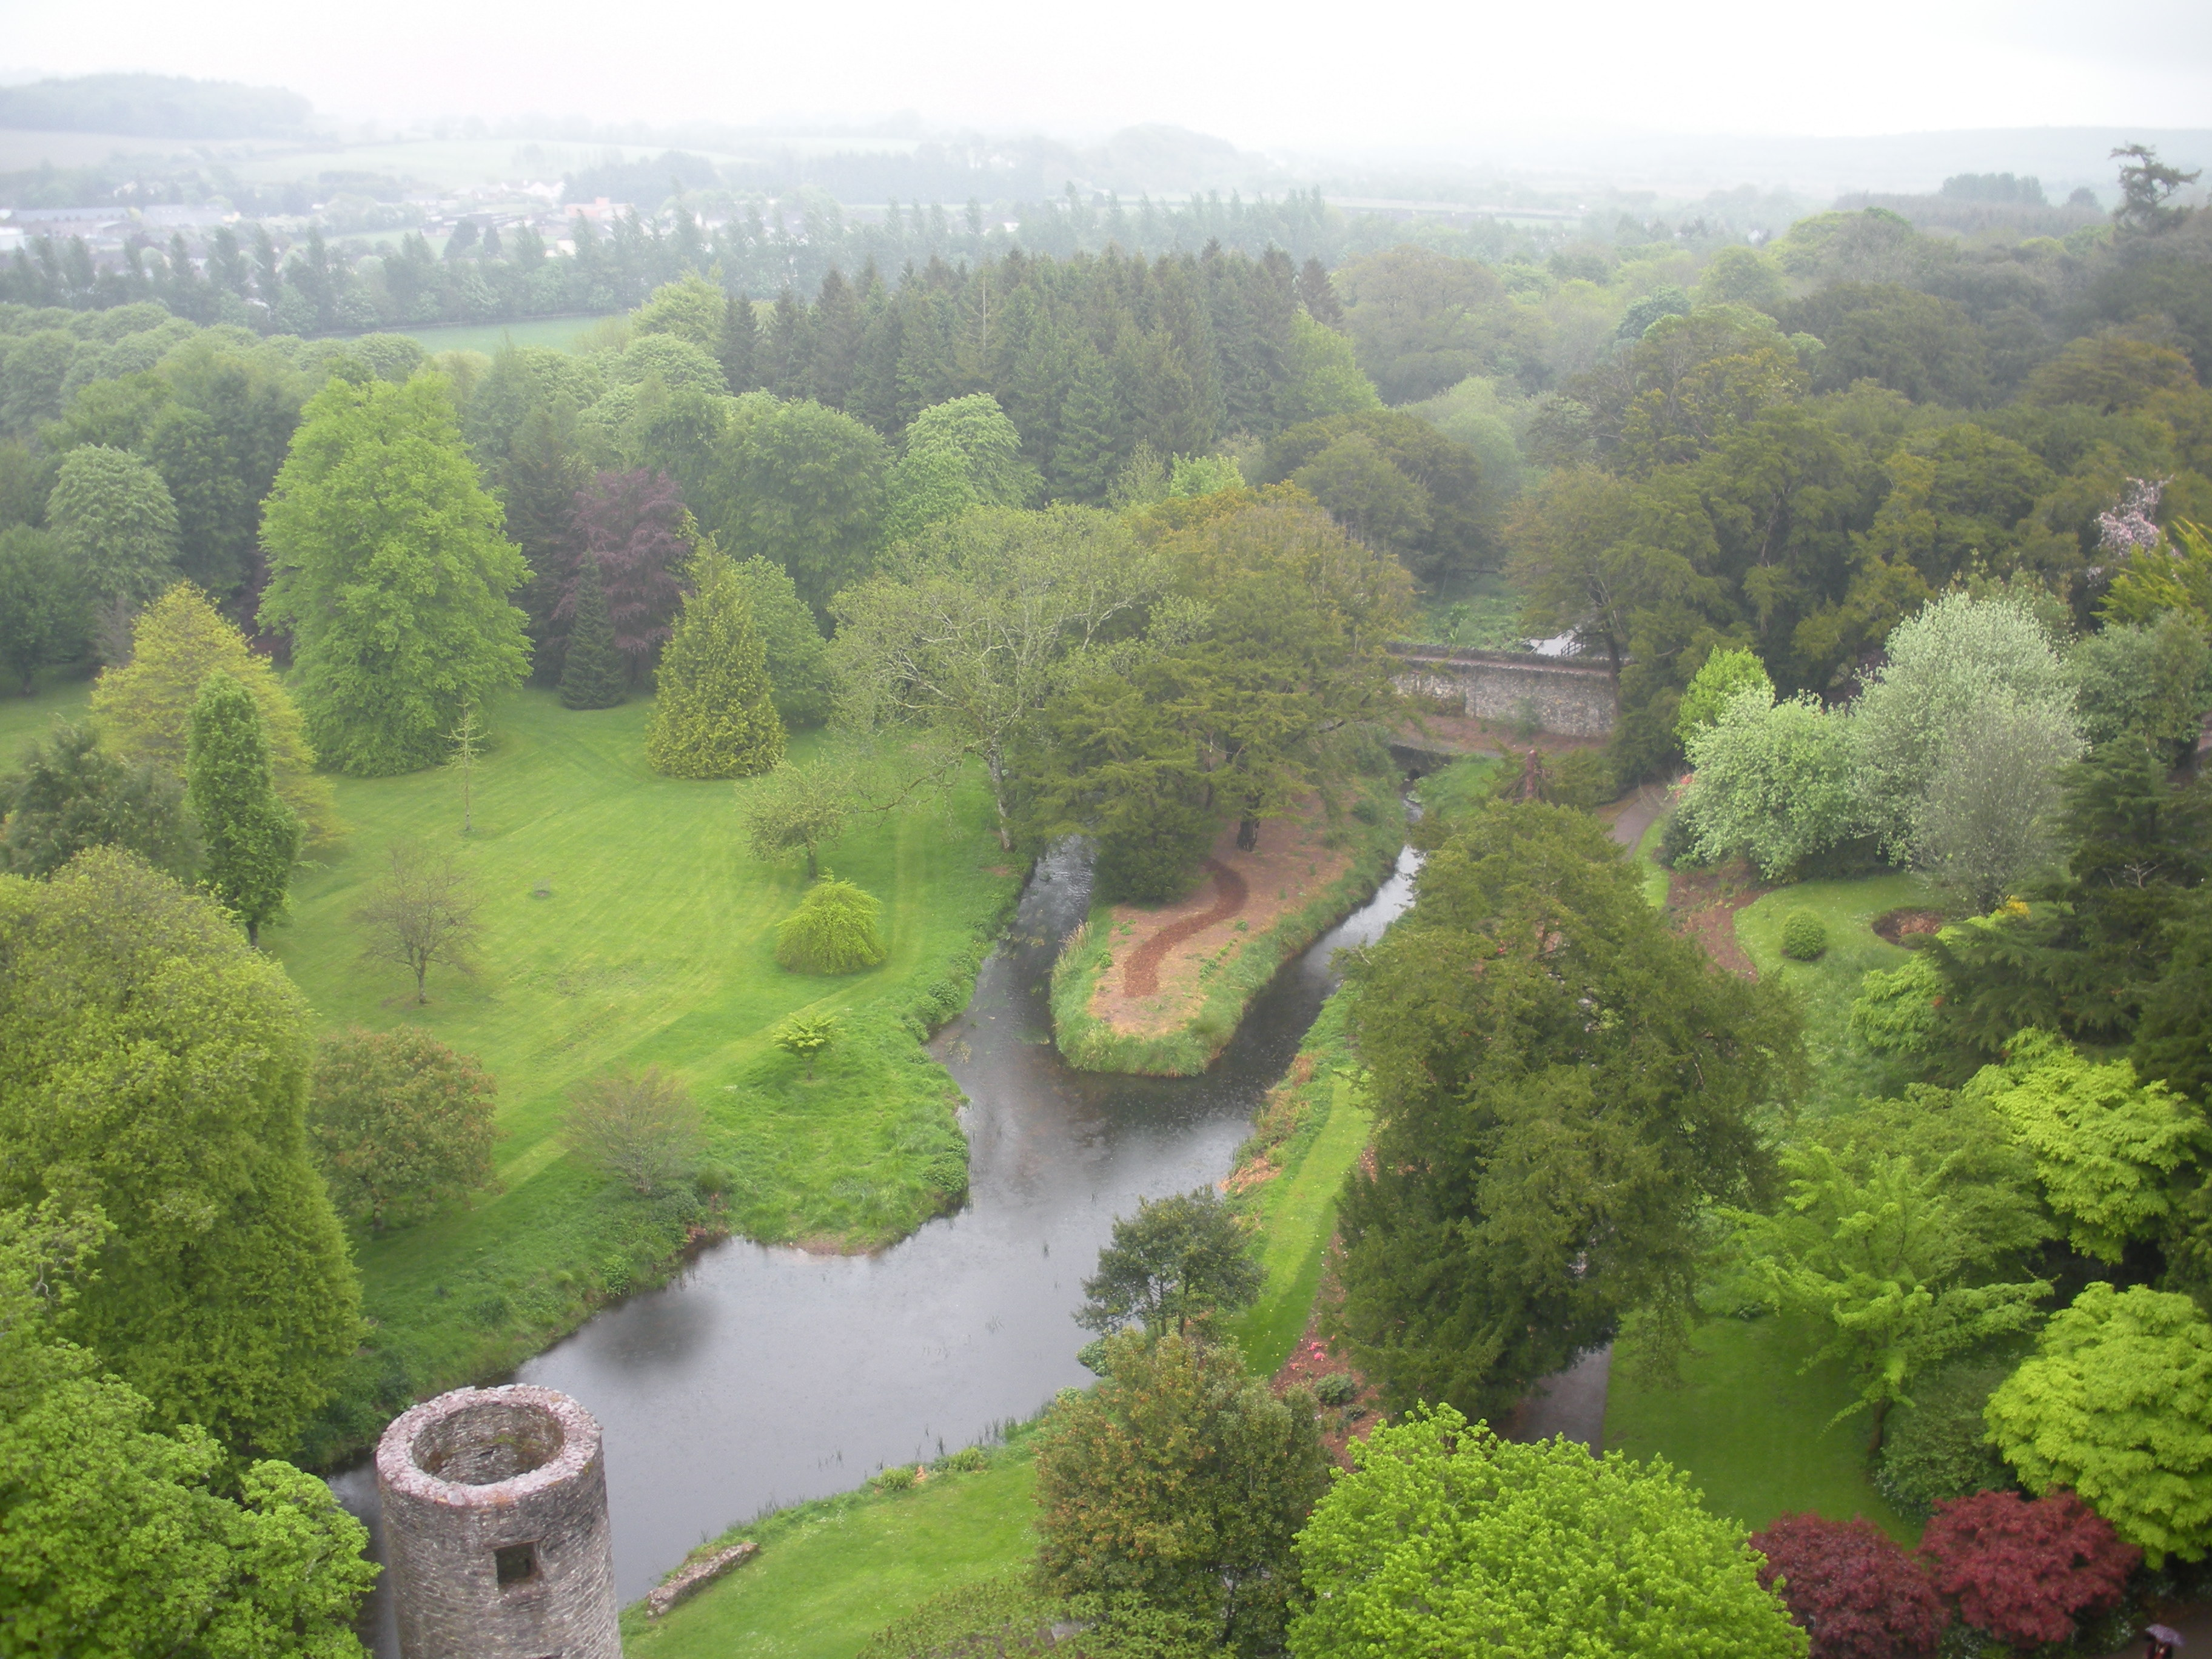 The view from the Blarney Stone